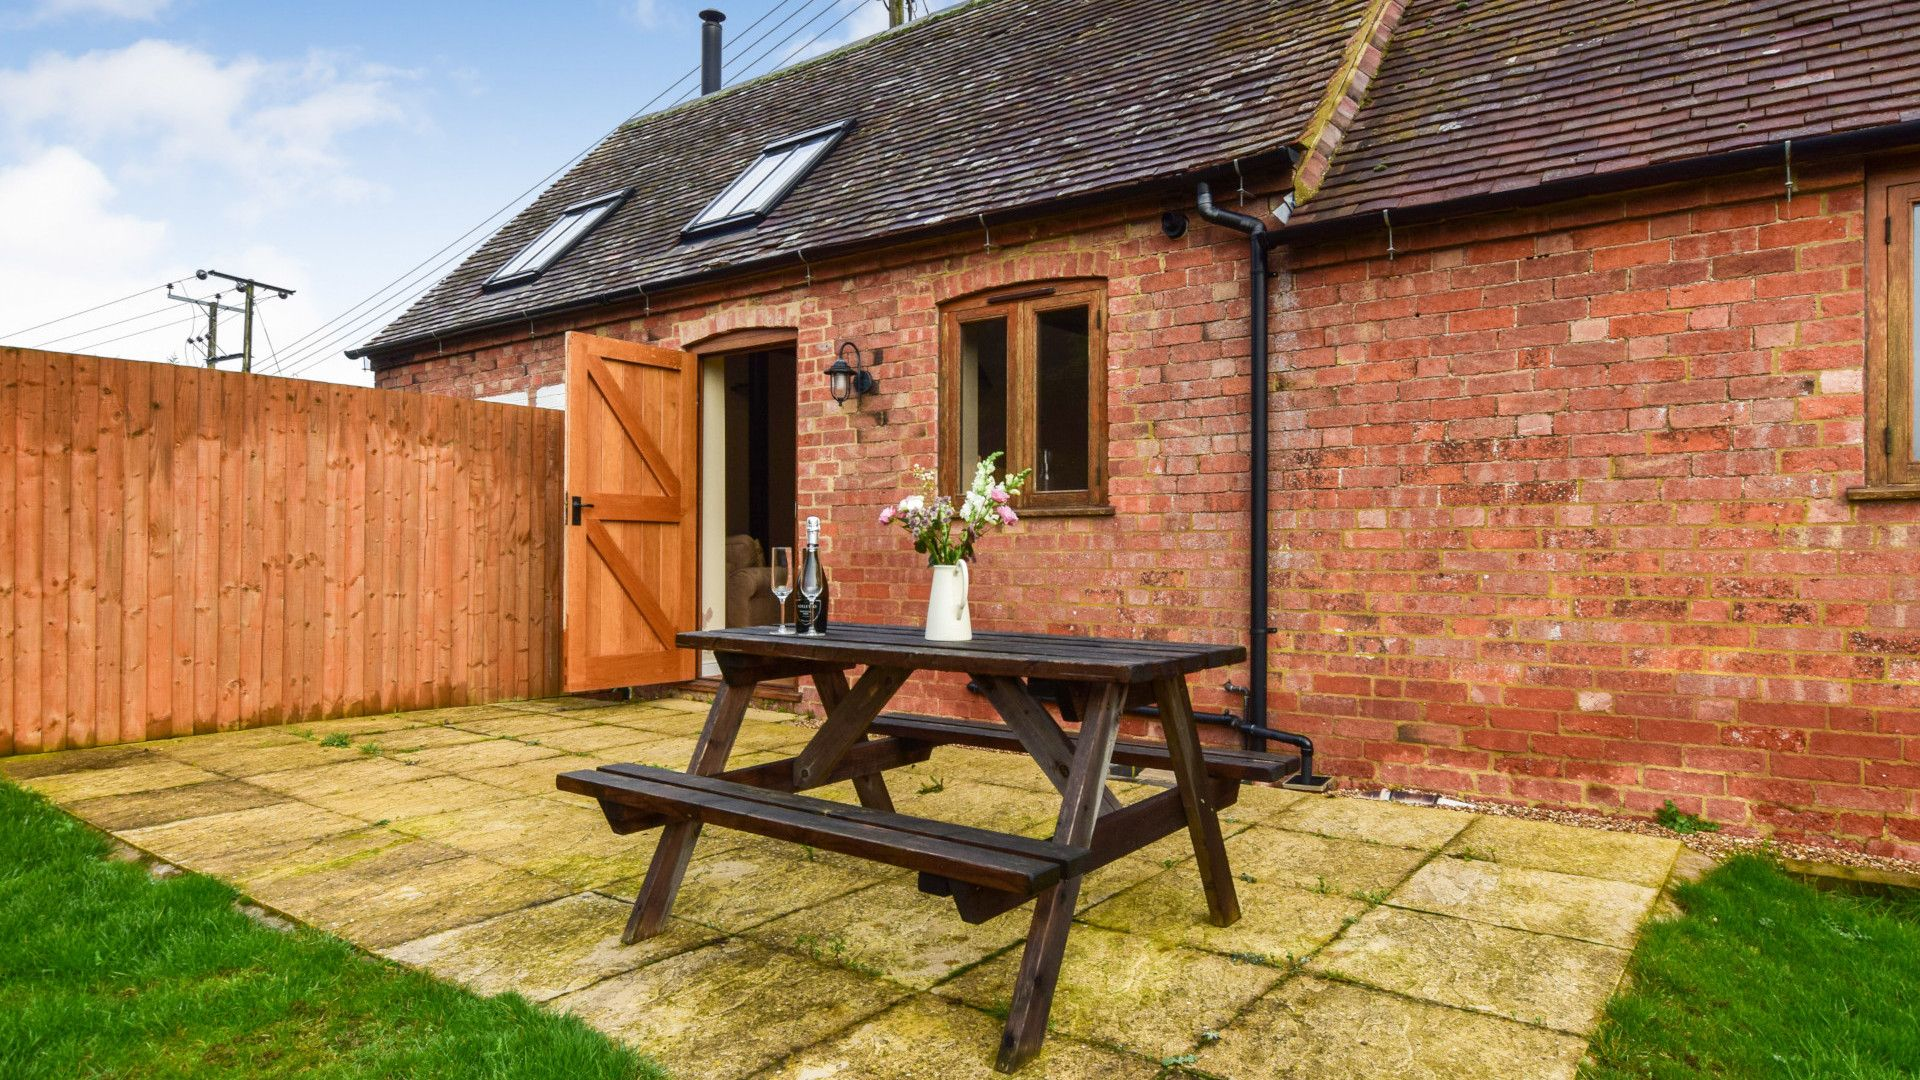 Patio and garden, Living area with log burner, Combine Shed, Bolthole Retreats